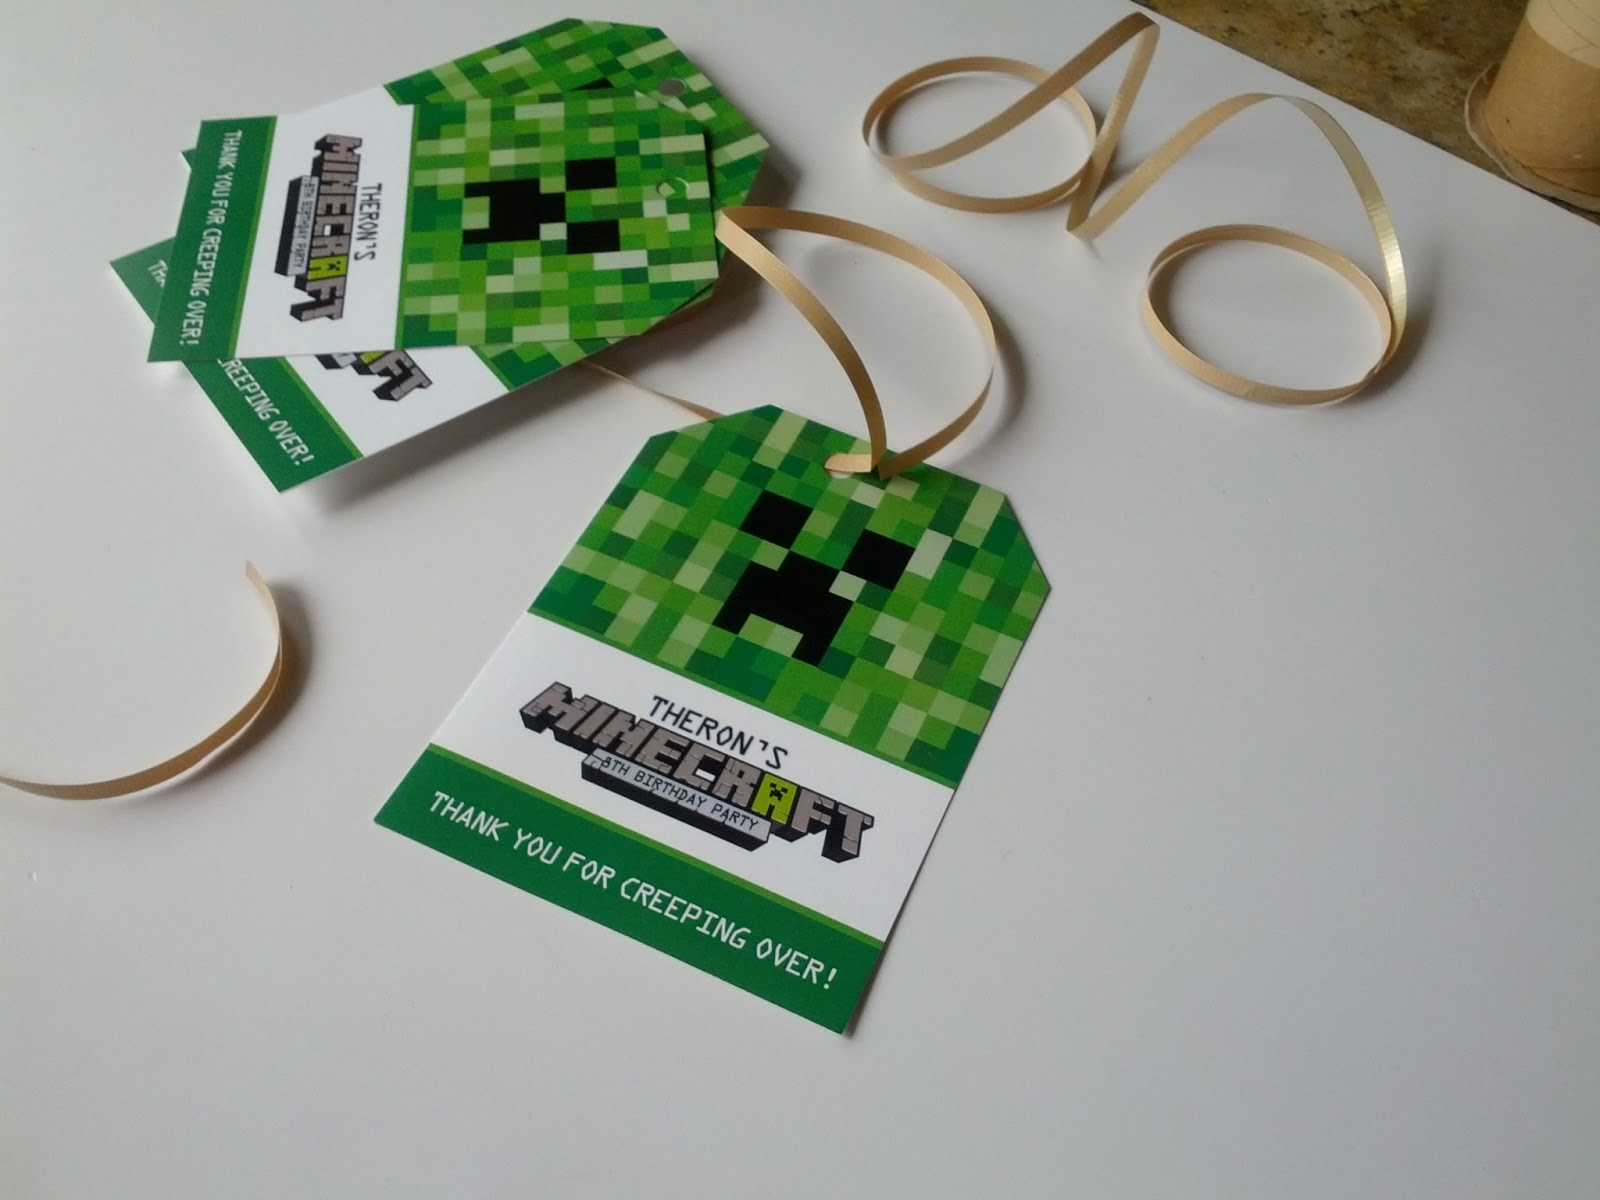 Minecraft birthday party ideas and invitations i took green cupcakes designed cupcake wrappers and cupcake toppers green bags with custom designed tags custom notepads green pencils with happy 8th solutioingenieria